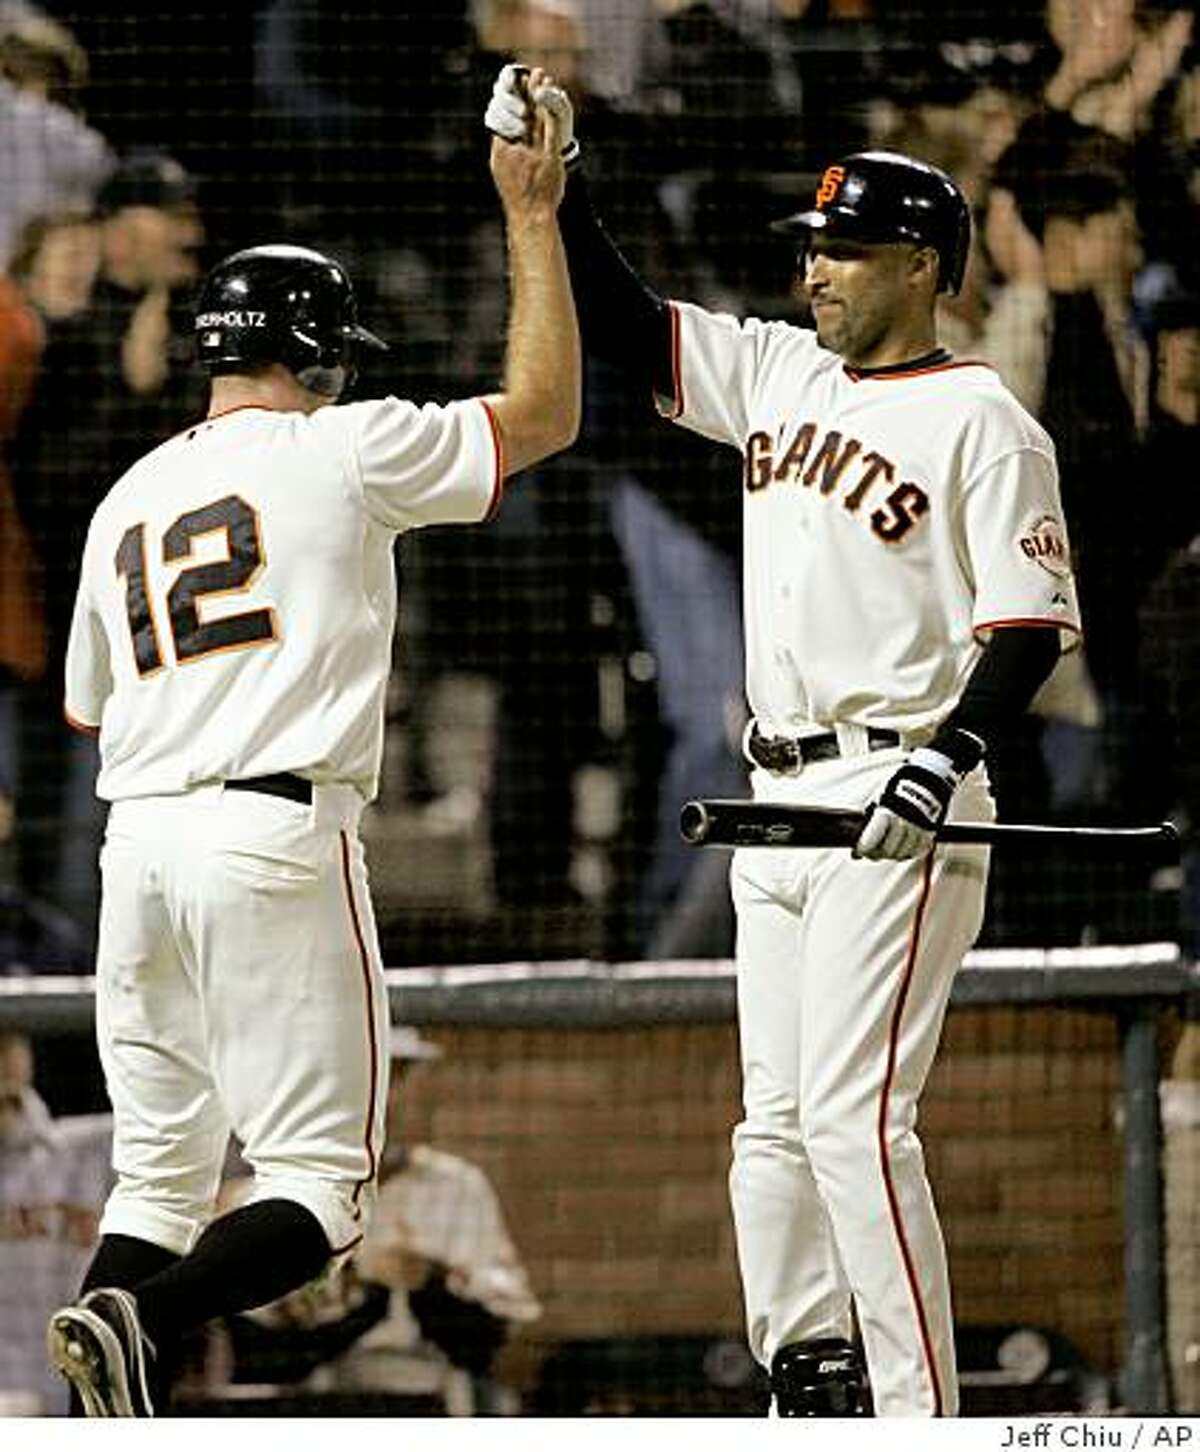 San Francisco Giants' Nate Schierholtz, left, is congratulated by Randy Winn after scoring on a wild pitch from Texas Rangers' Jason Jennings in the 11th inning of a baseball game in San Francisco, Saturday, June 20, 2009. The Giants won 2-1 in 11 innings. (AP Photo/Jeff Chiu)